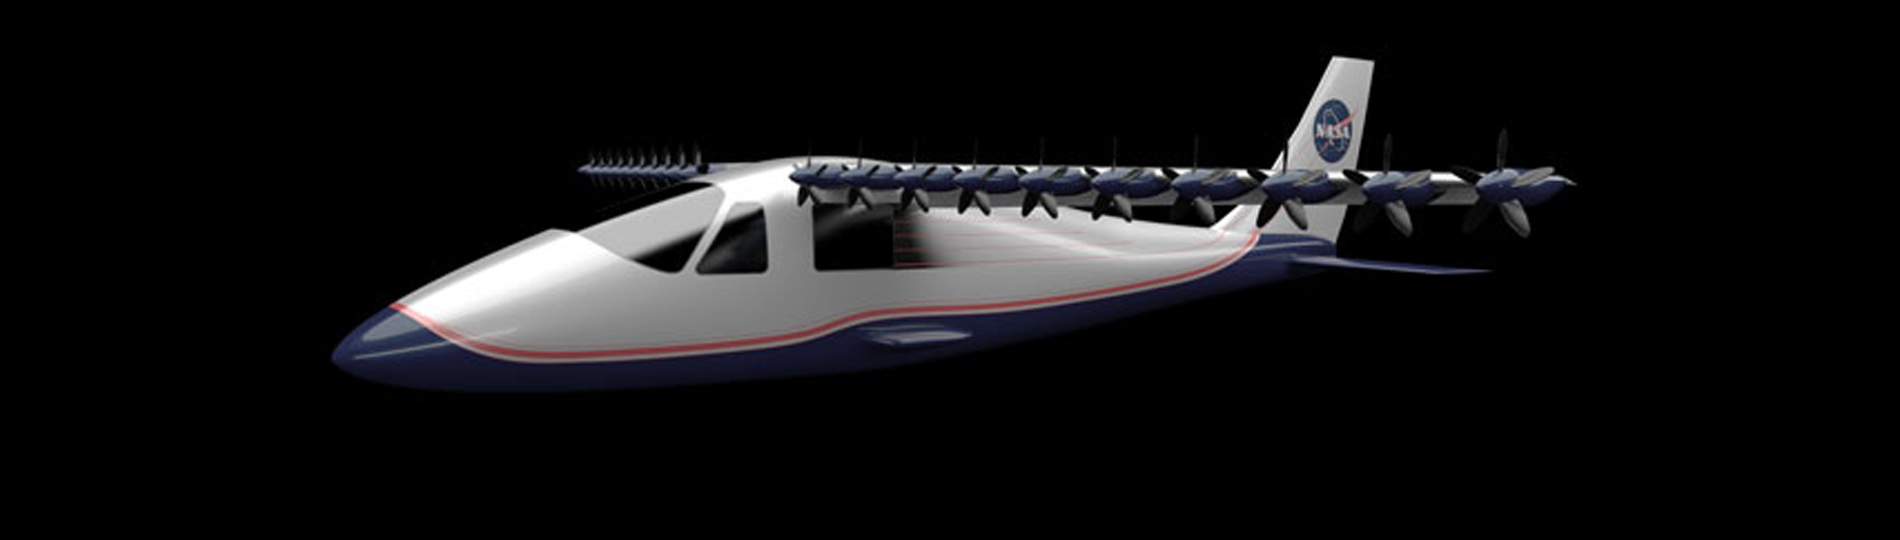 Distributed electric propulsion may usher in a new era of flight